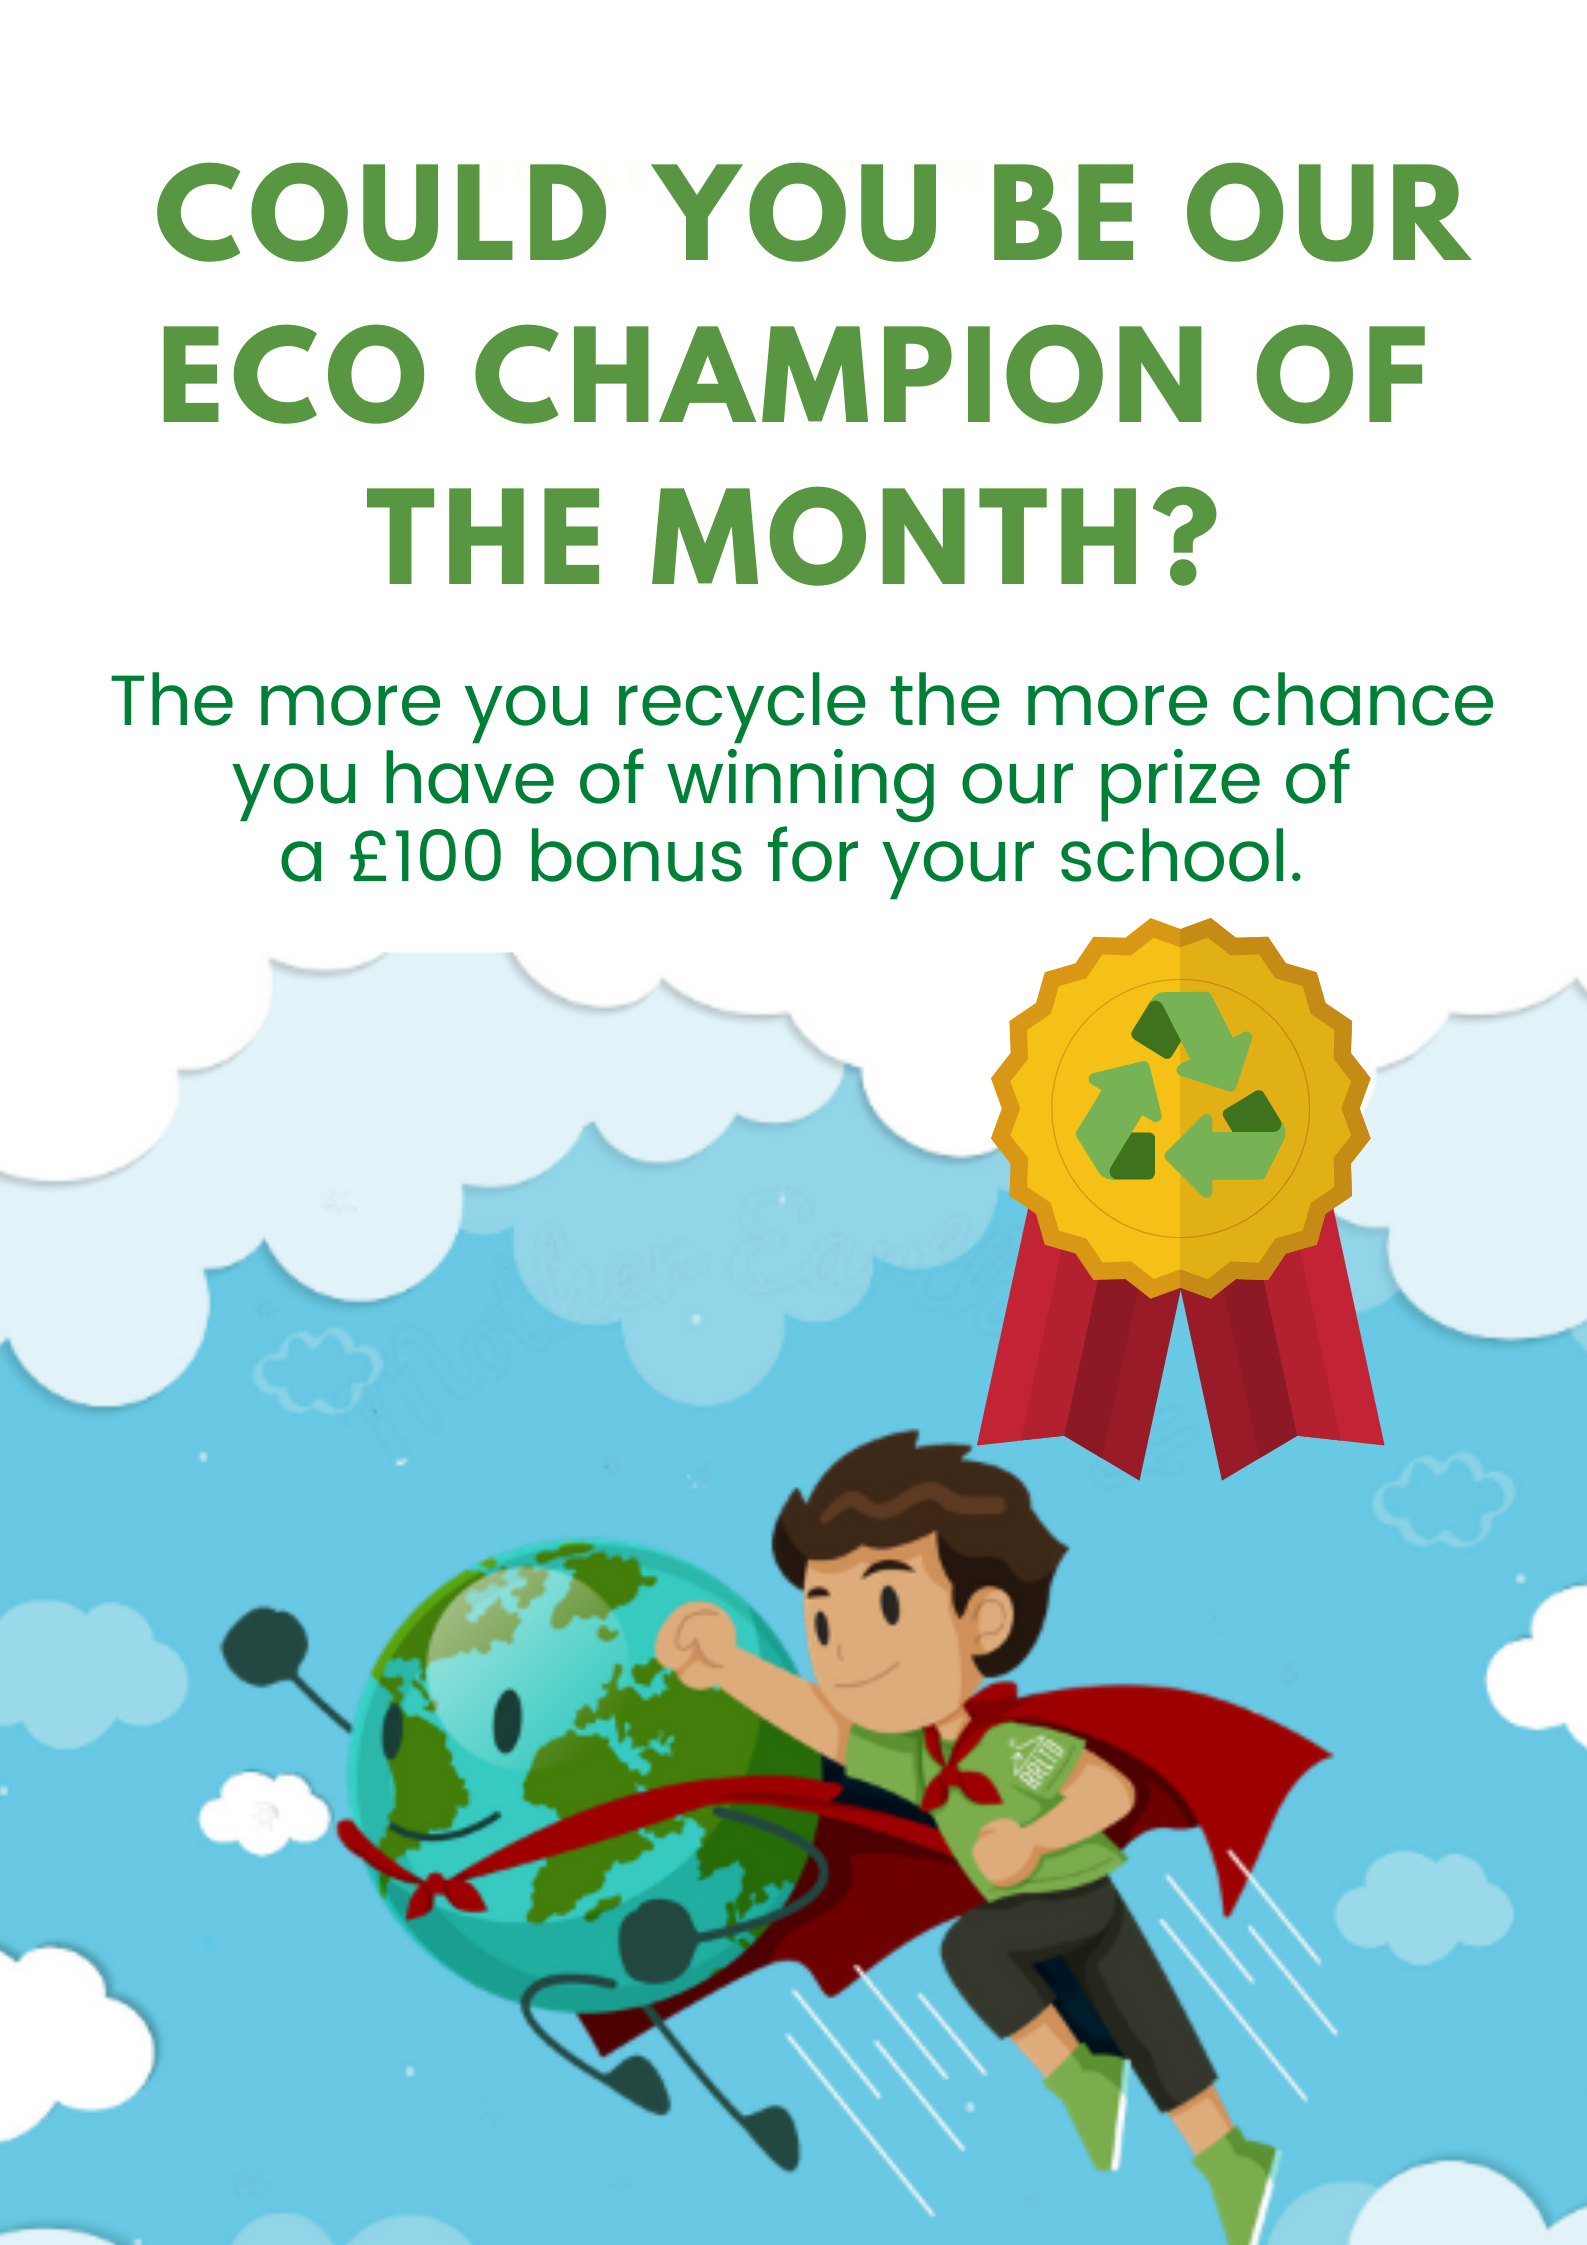 ECO CHAMPION OF THE MONTH